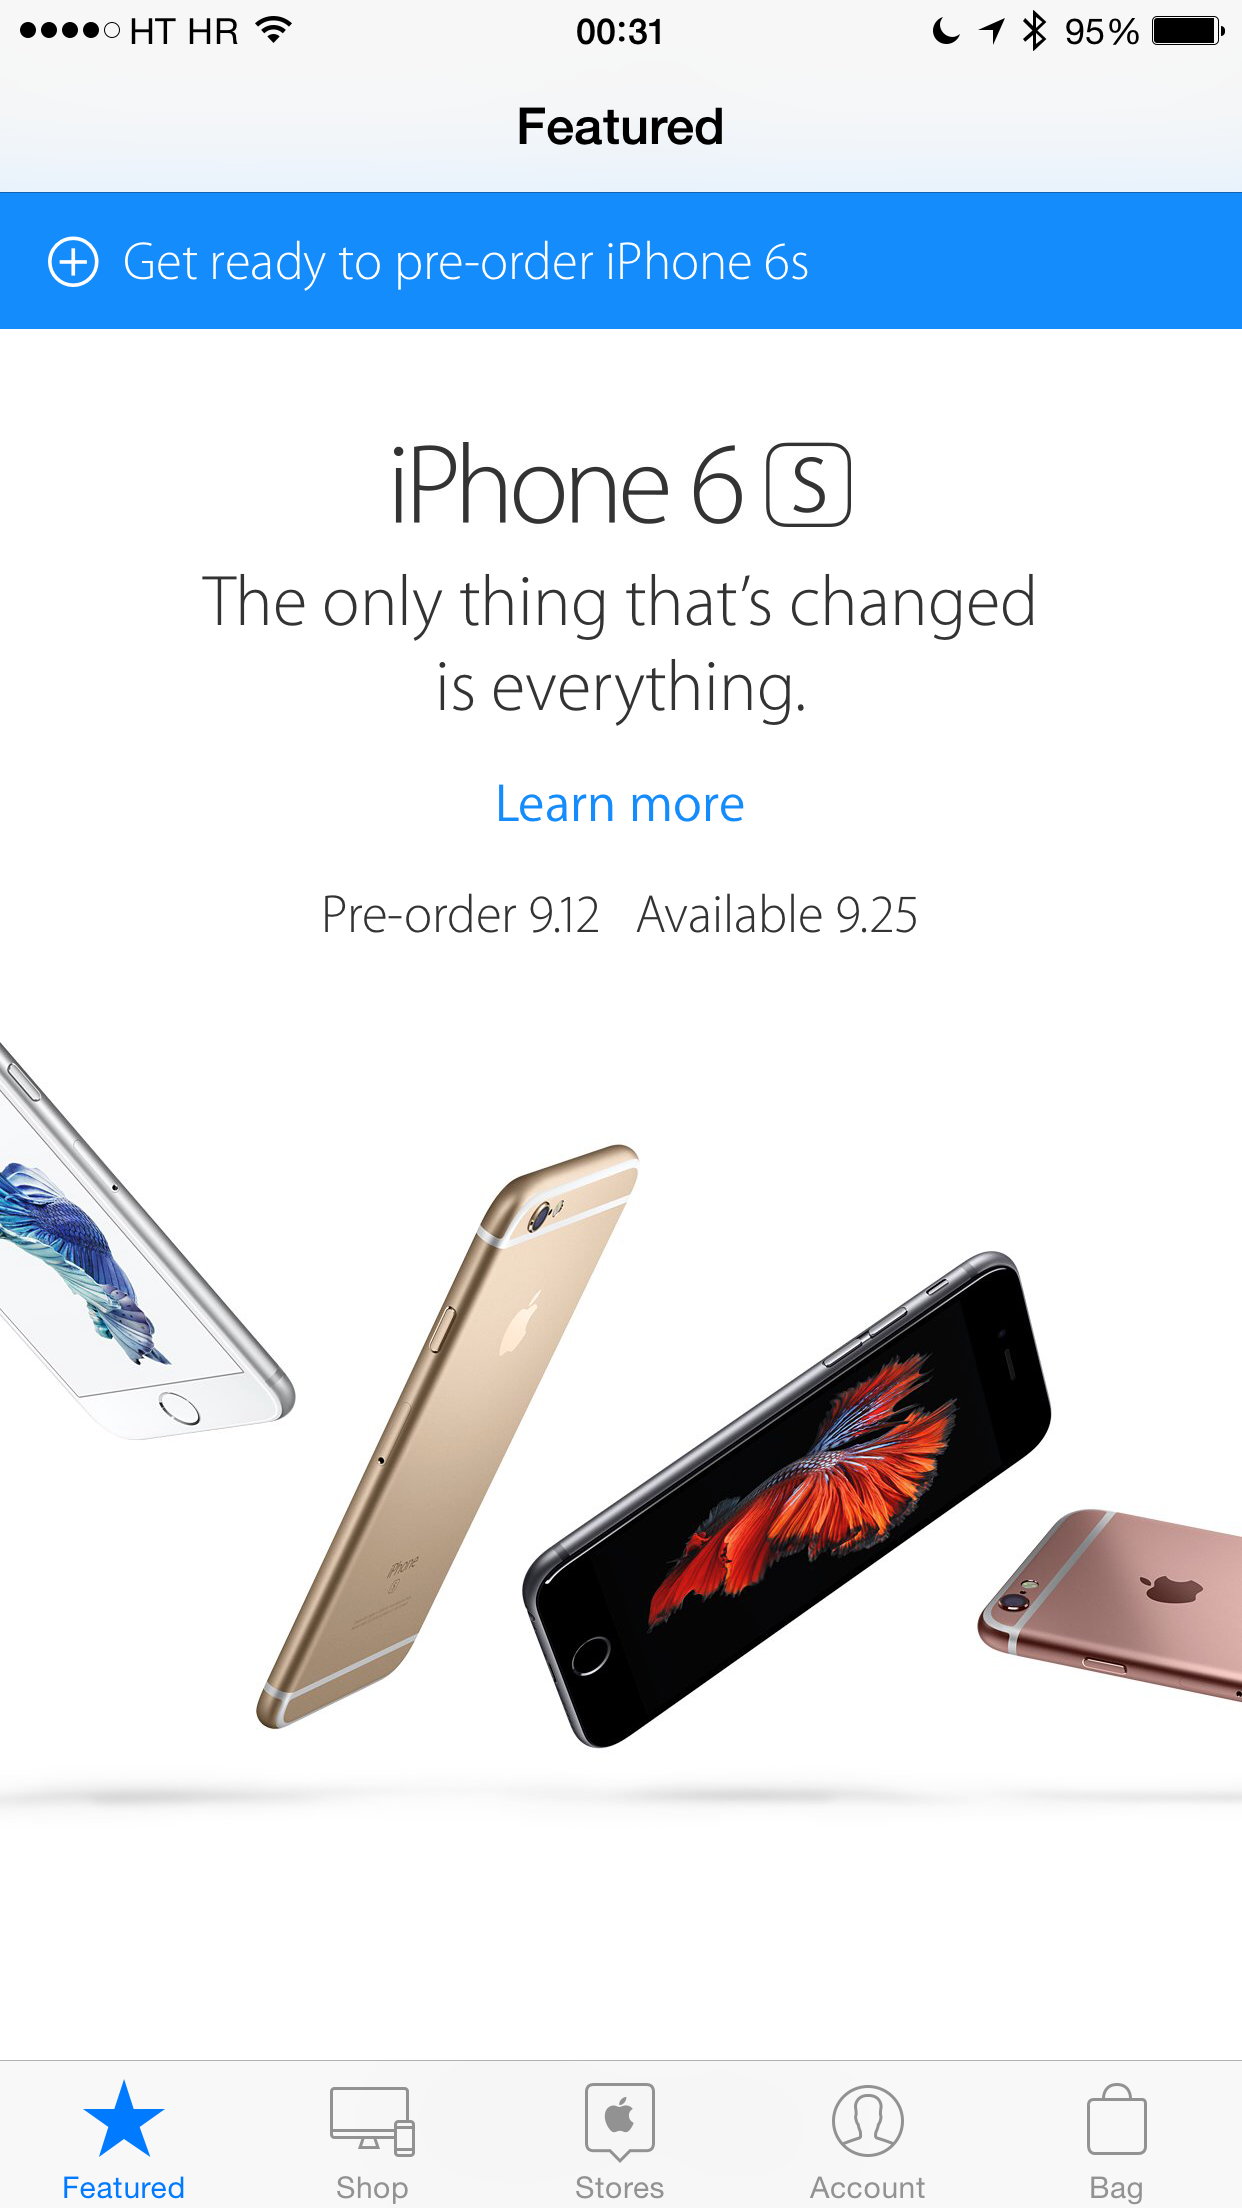 Preorder iPhone 6s Apple Store app screenshot 001